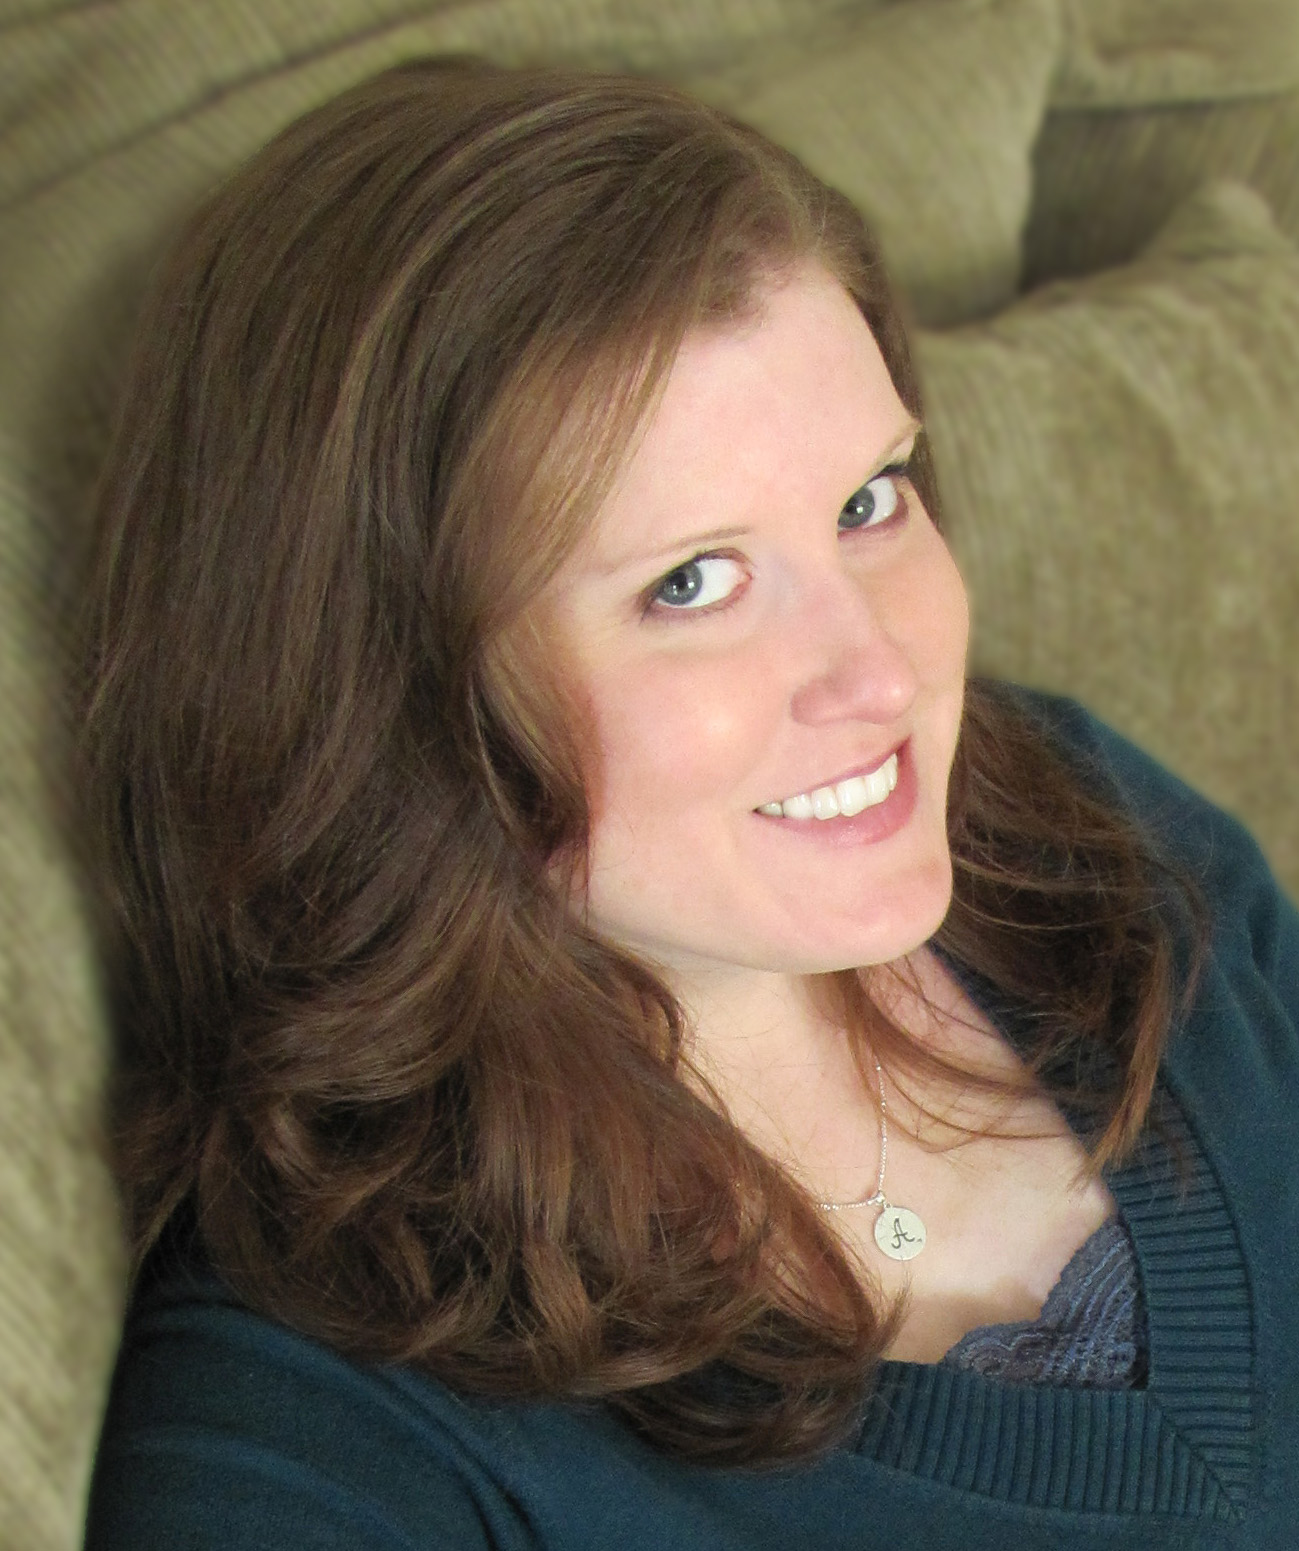 About Anna Lee Huber Is The Award Winning Author Of Lady Darby Historical Mystery Series Her Debut Anatomists Wife Has Won And Been